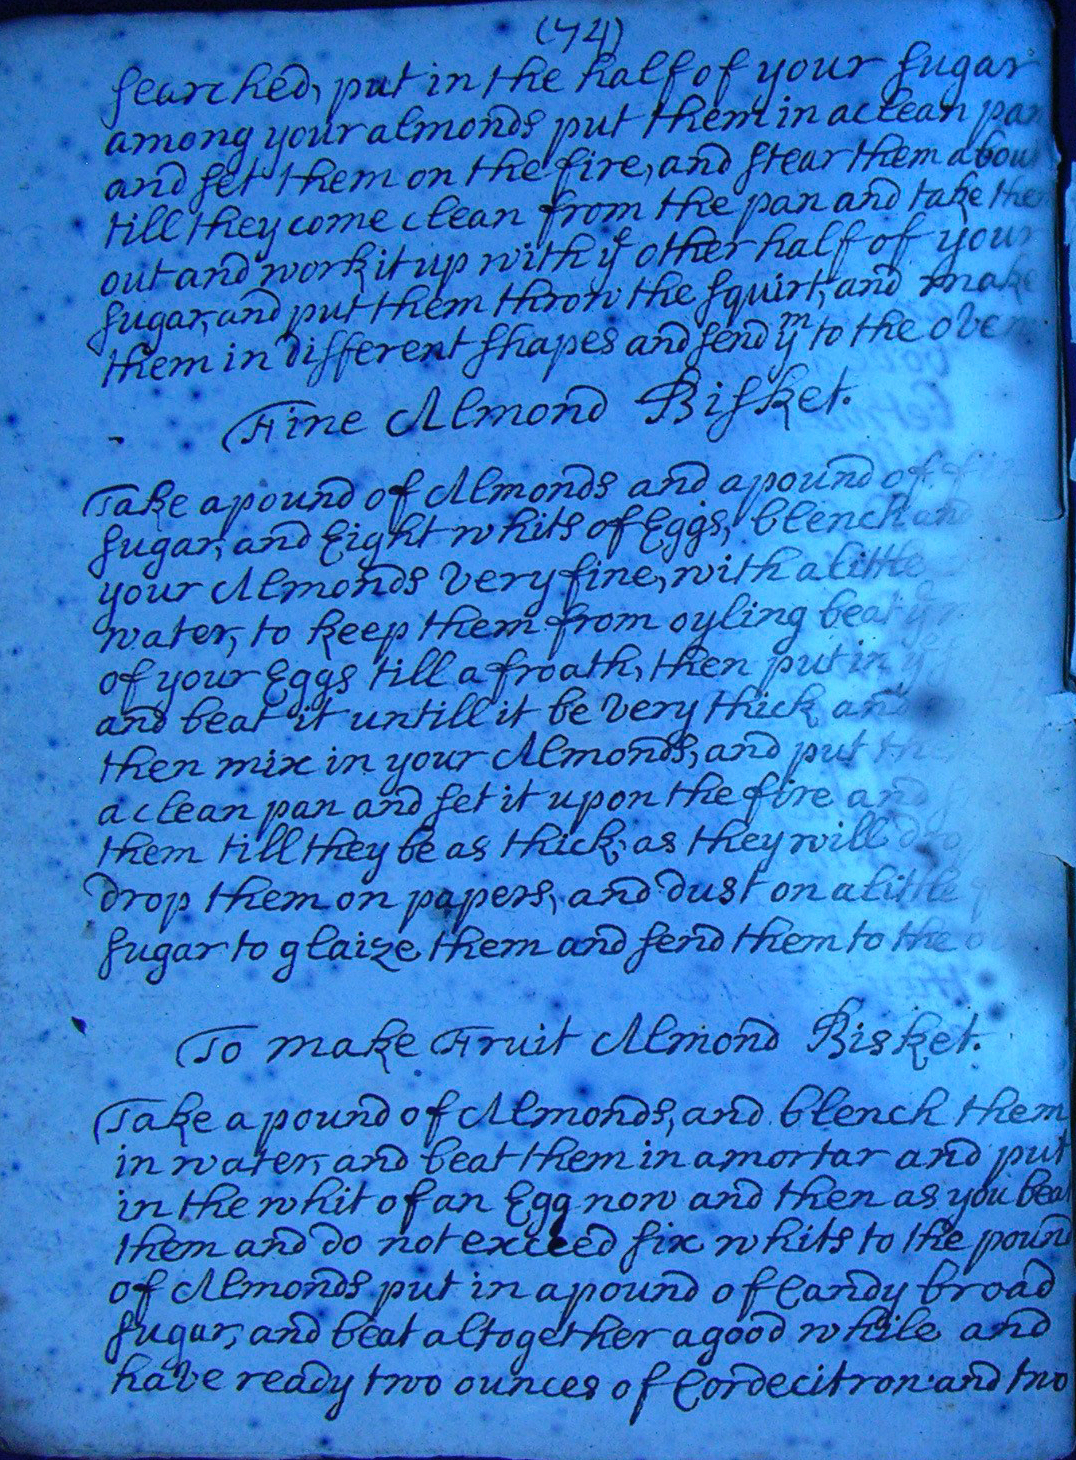 18th century recipe book from the Papers of the Lindsay Family of Dowhill. When this item came to National Records of Scotland it showed severe damage caused by a large stain in the middle of the book. It has since been conserved and photographed with UV light to help reveal some of the damaged text. Read more about how it was repaired in 'A Lovely Gift'. (National Records of Scotland, GD254/781)